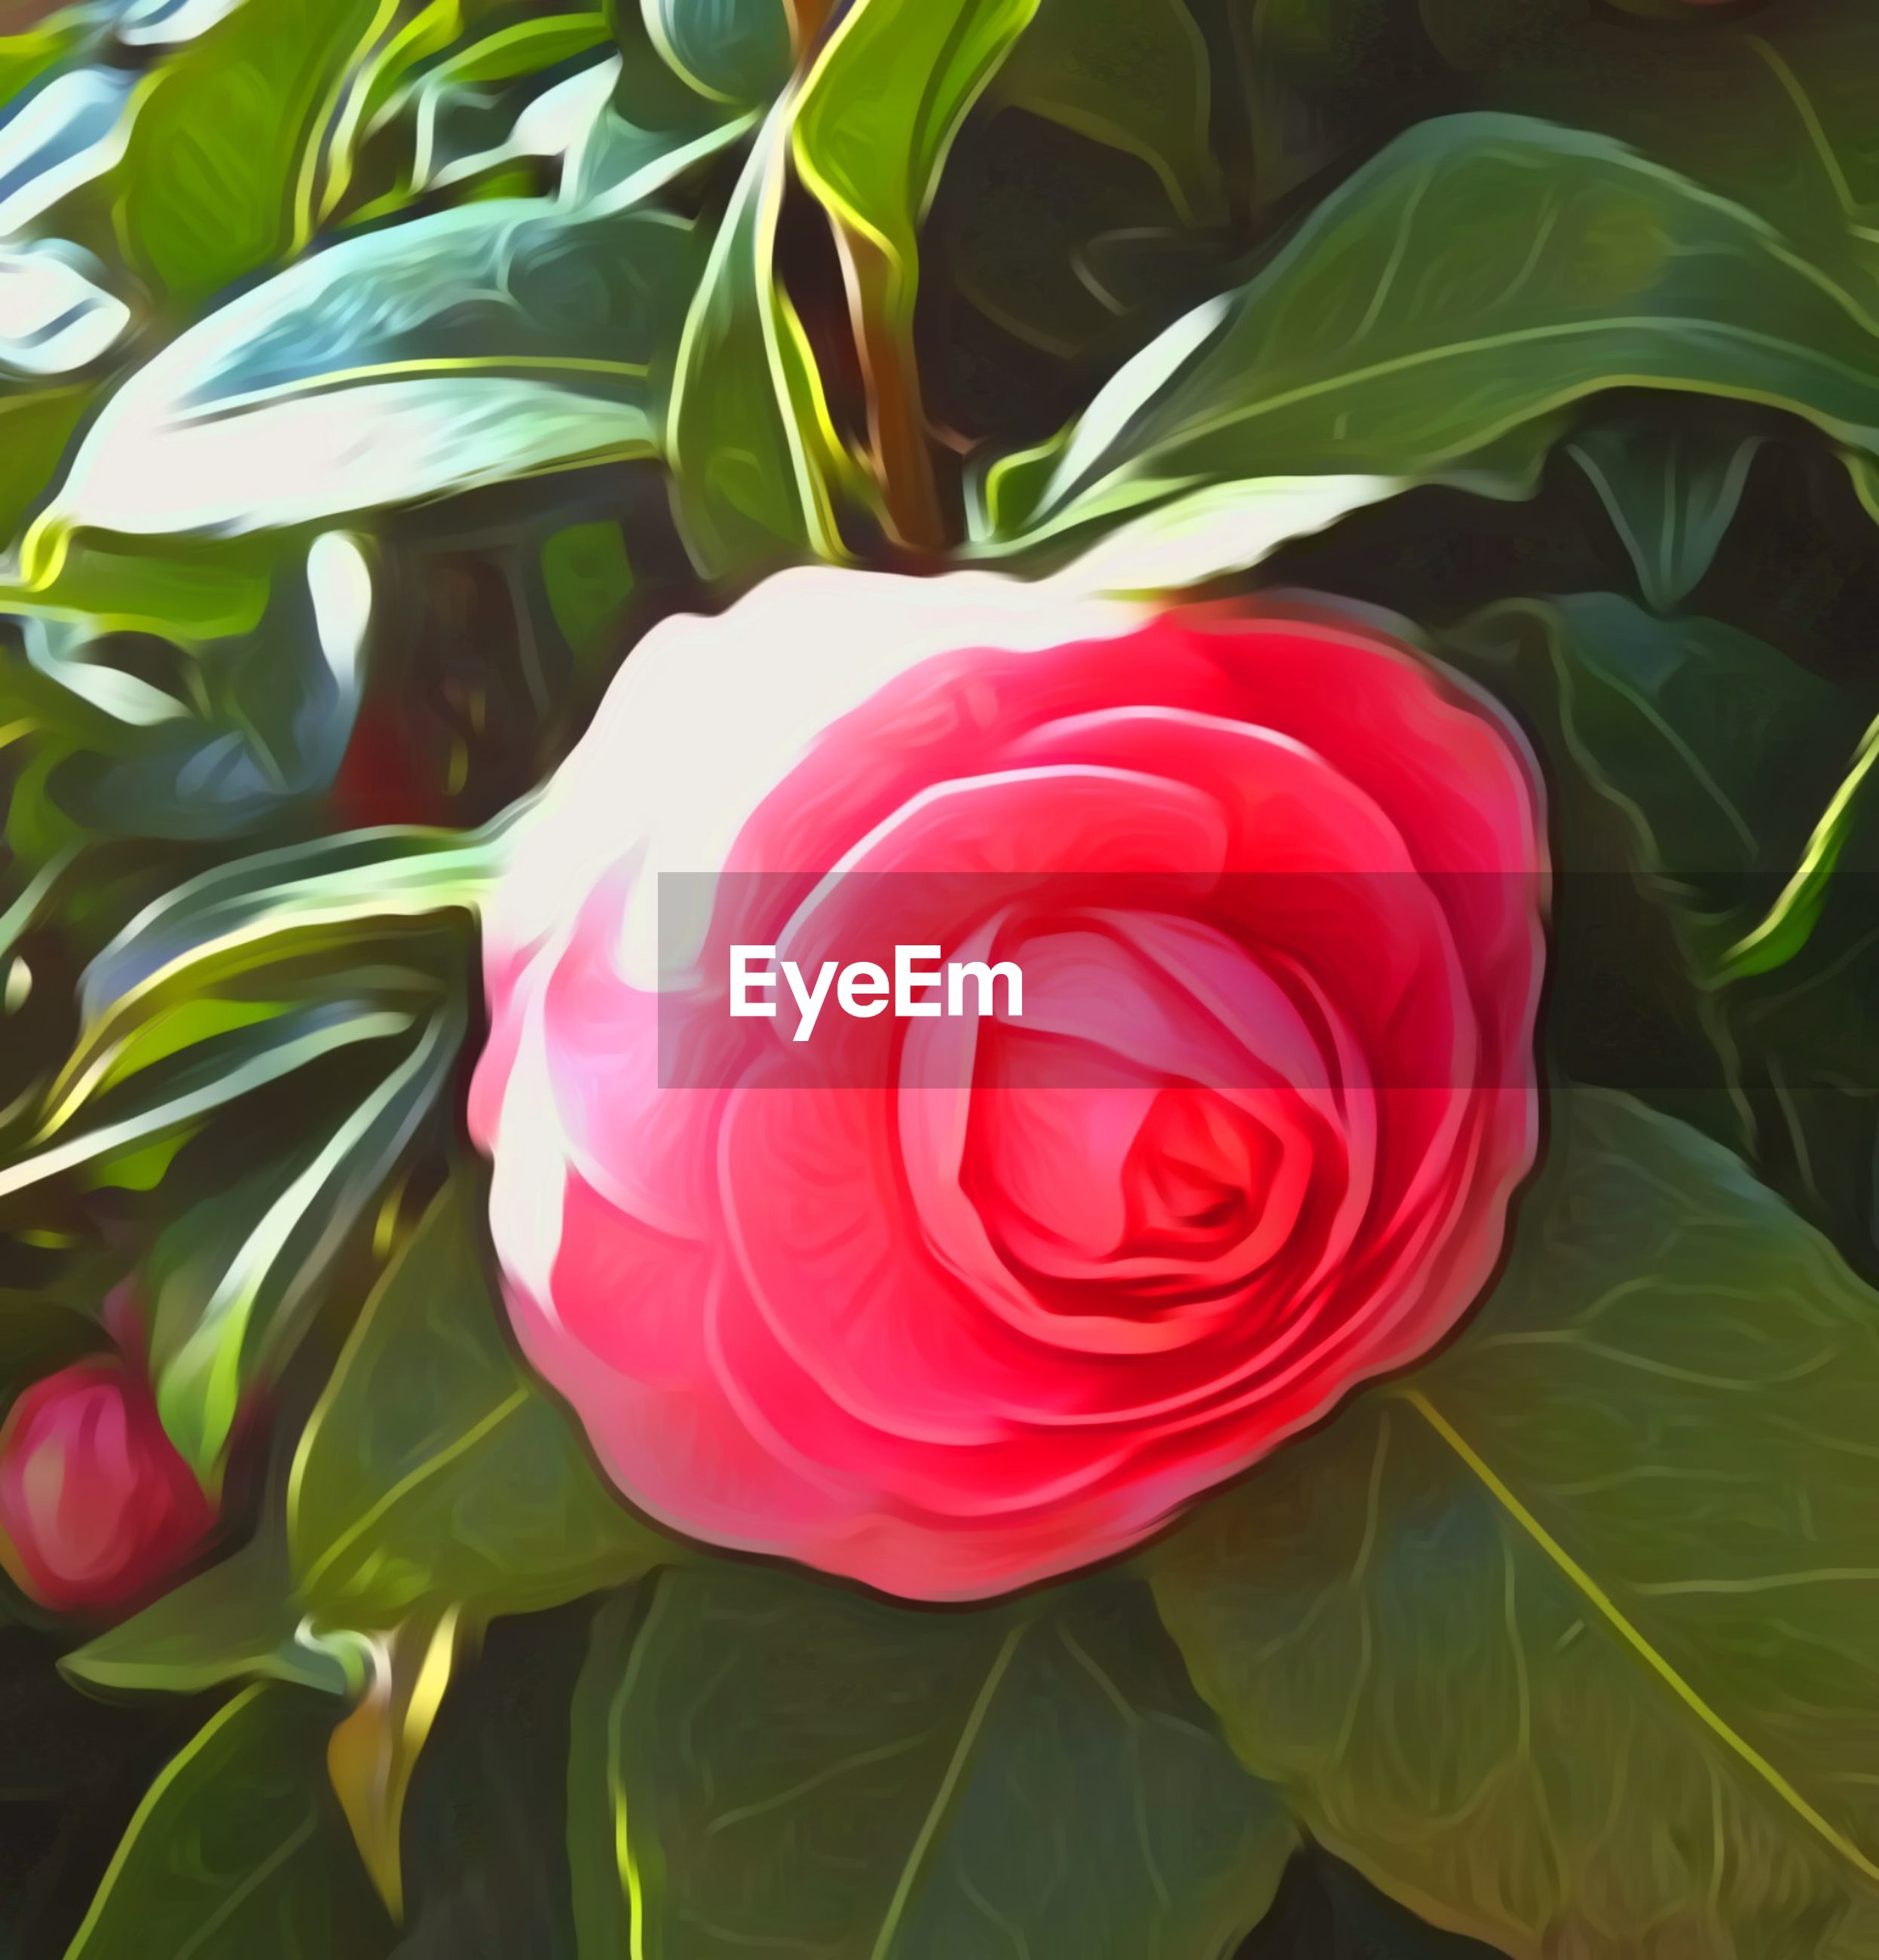 plant part, leaf, plant, freshness, beauty in nature, vulnerability, close-up, fragility, petal, flower, flower head, flowering plant, green color, nature, inflorescence, rose, growth, rose - flower, no people, red, outdoors, softness, flower arrangement